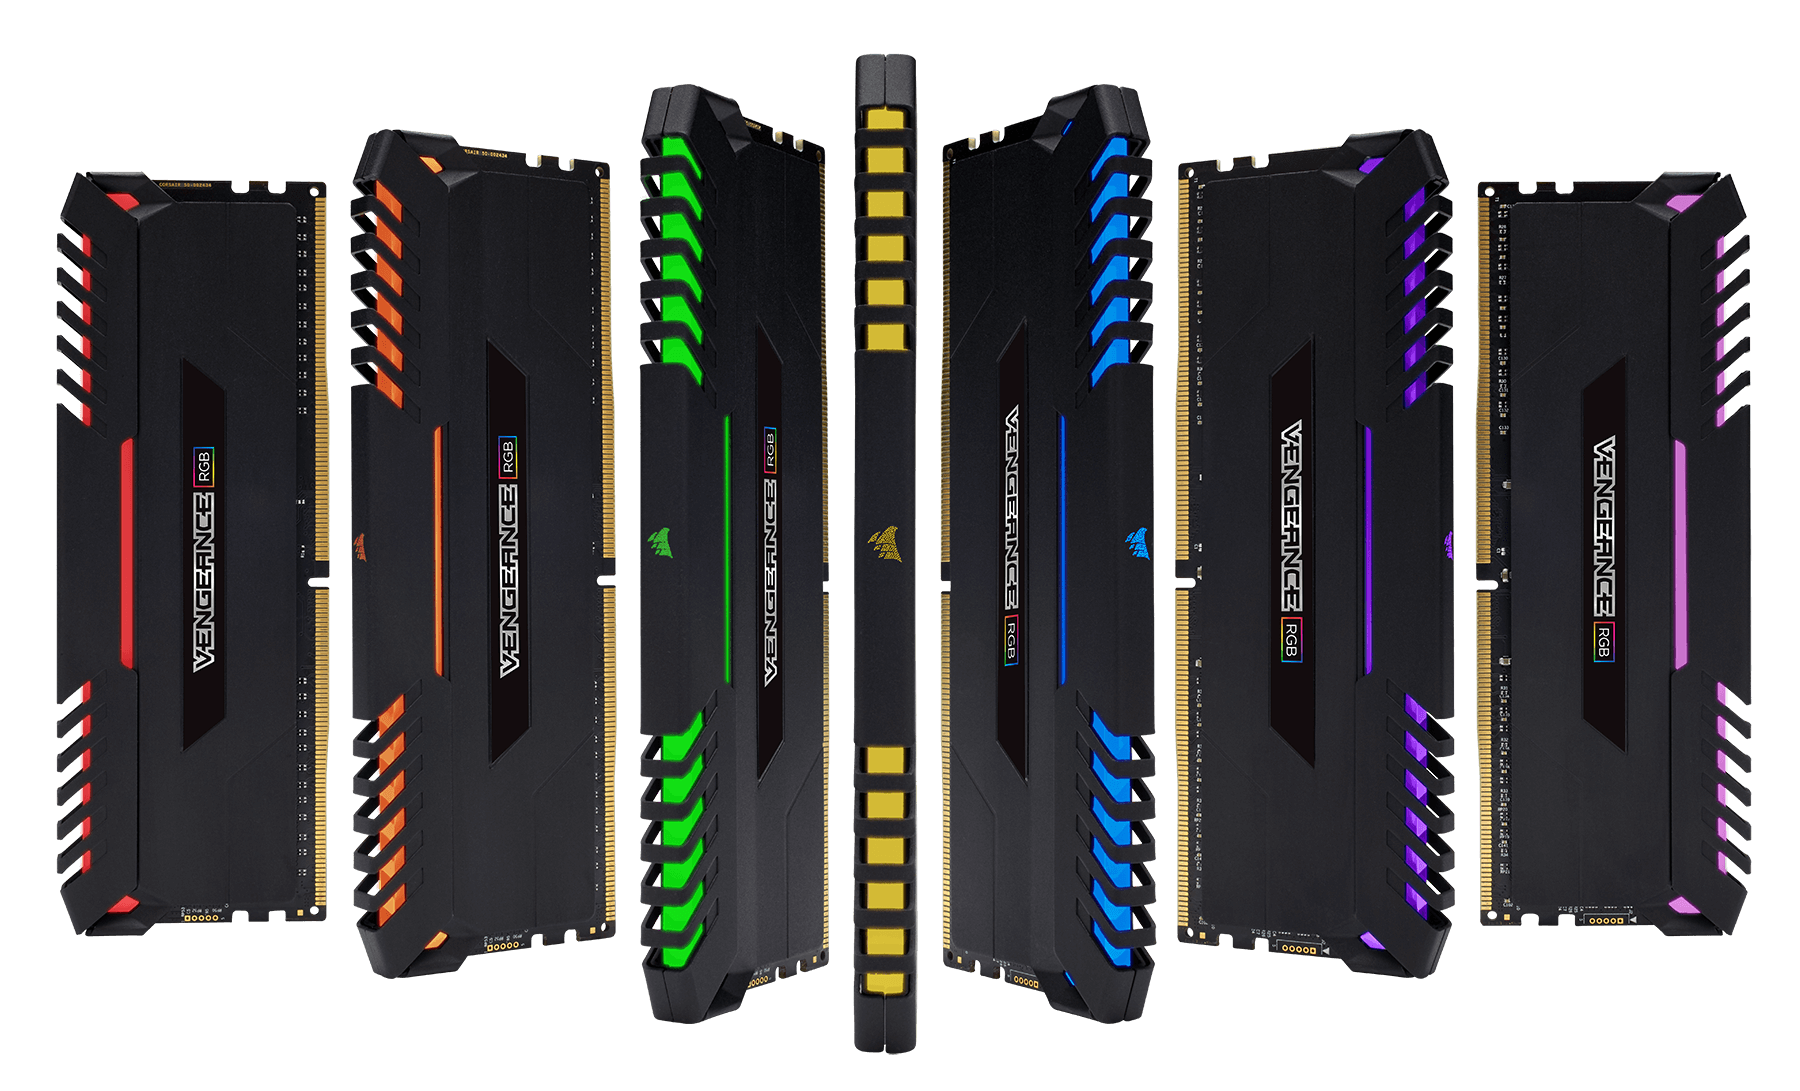 CORSAIR VENGEANCE RGB 16GB(2X8GB) DDR4 BUS 3000 CAS 15